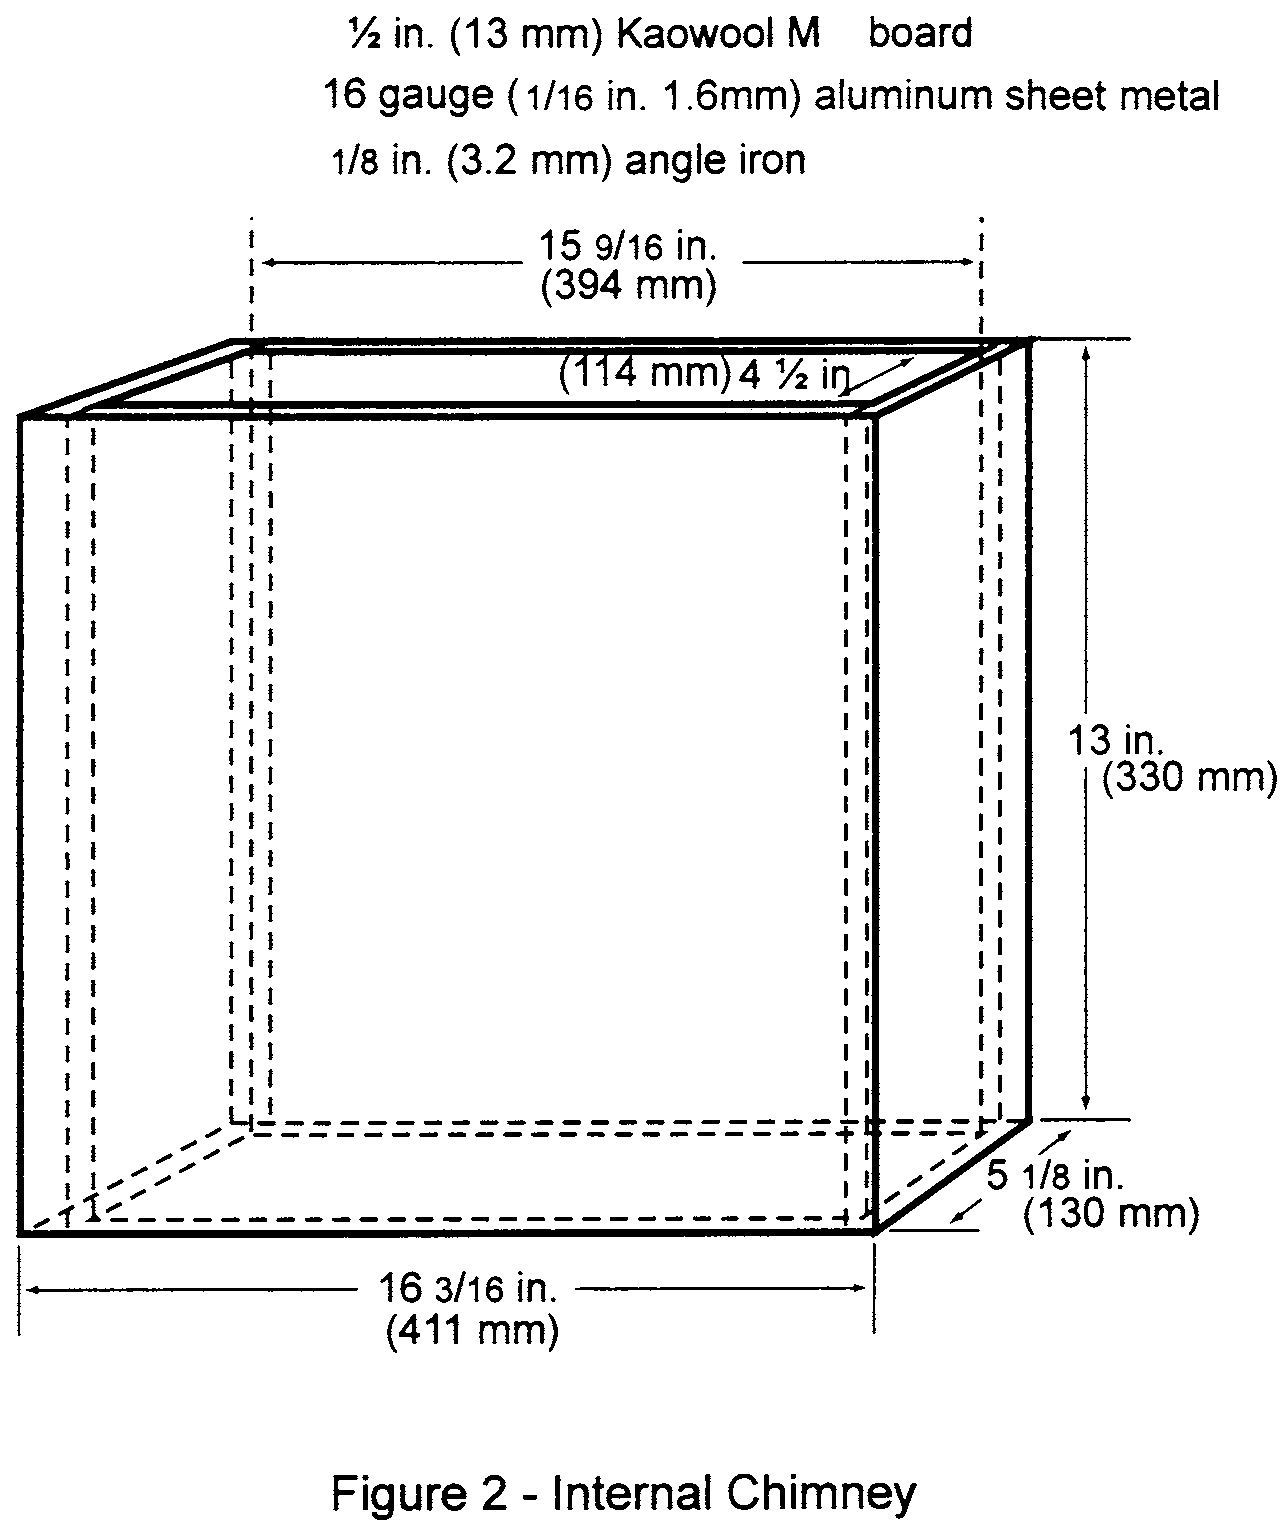 Graphic of (1) Radiant panel test chamber. Conduct tests in a radiant panel test chamber (see figure 1 above). Place the test chamber under an exhaust hood to facilitate clearing the chamber of smoke after each test. The radiant panel test chamber must be an enclosure 55 inches (1397 mm) long by 19.5 (495 mm) deep by 28 (710 mm) to 30 inches (maximum) (762 mm) above the test specimen. Insulate the sides, ends, and top with a fibrous ceramic insulation, such as Kaowool M TM board. On the front side, provide a 52 by 12-inch (1321 by 305 mm) draft-free, high-temperature, glass window for viewing the sample during testing. Place a door below the window to provide access to the movable specimen platform holder. The bottom of the test chamber must be a sliding steel platform that has provision for securing the test specimen holder in a fixed and level position. The chamber must have an internal chimney with exterior dimensions of 5.1 inches (129 mm) wide, by 16.2 inches (411 mm) deep by 13 inches (330 mm) high at the opposite end of the chamber from the radiant energy source. The interior dimensions must be 4.5 inches (114 mm) wide by 15.6 inches (395 mm) deep. The chimney must extend to the top of the chamber (see figure 2).